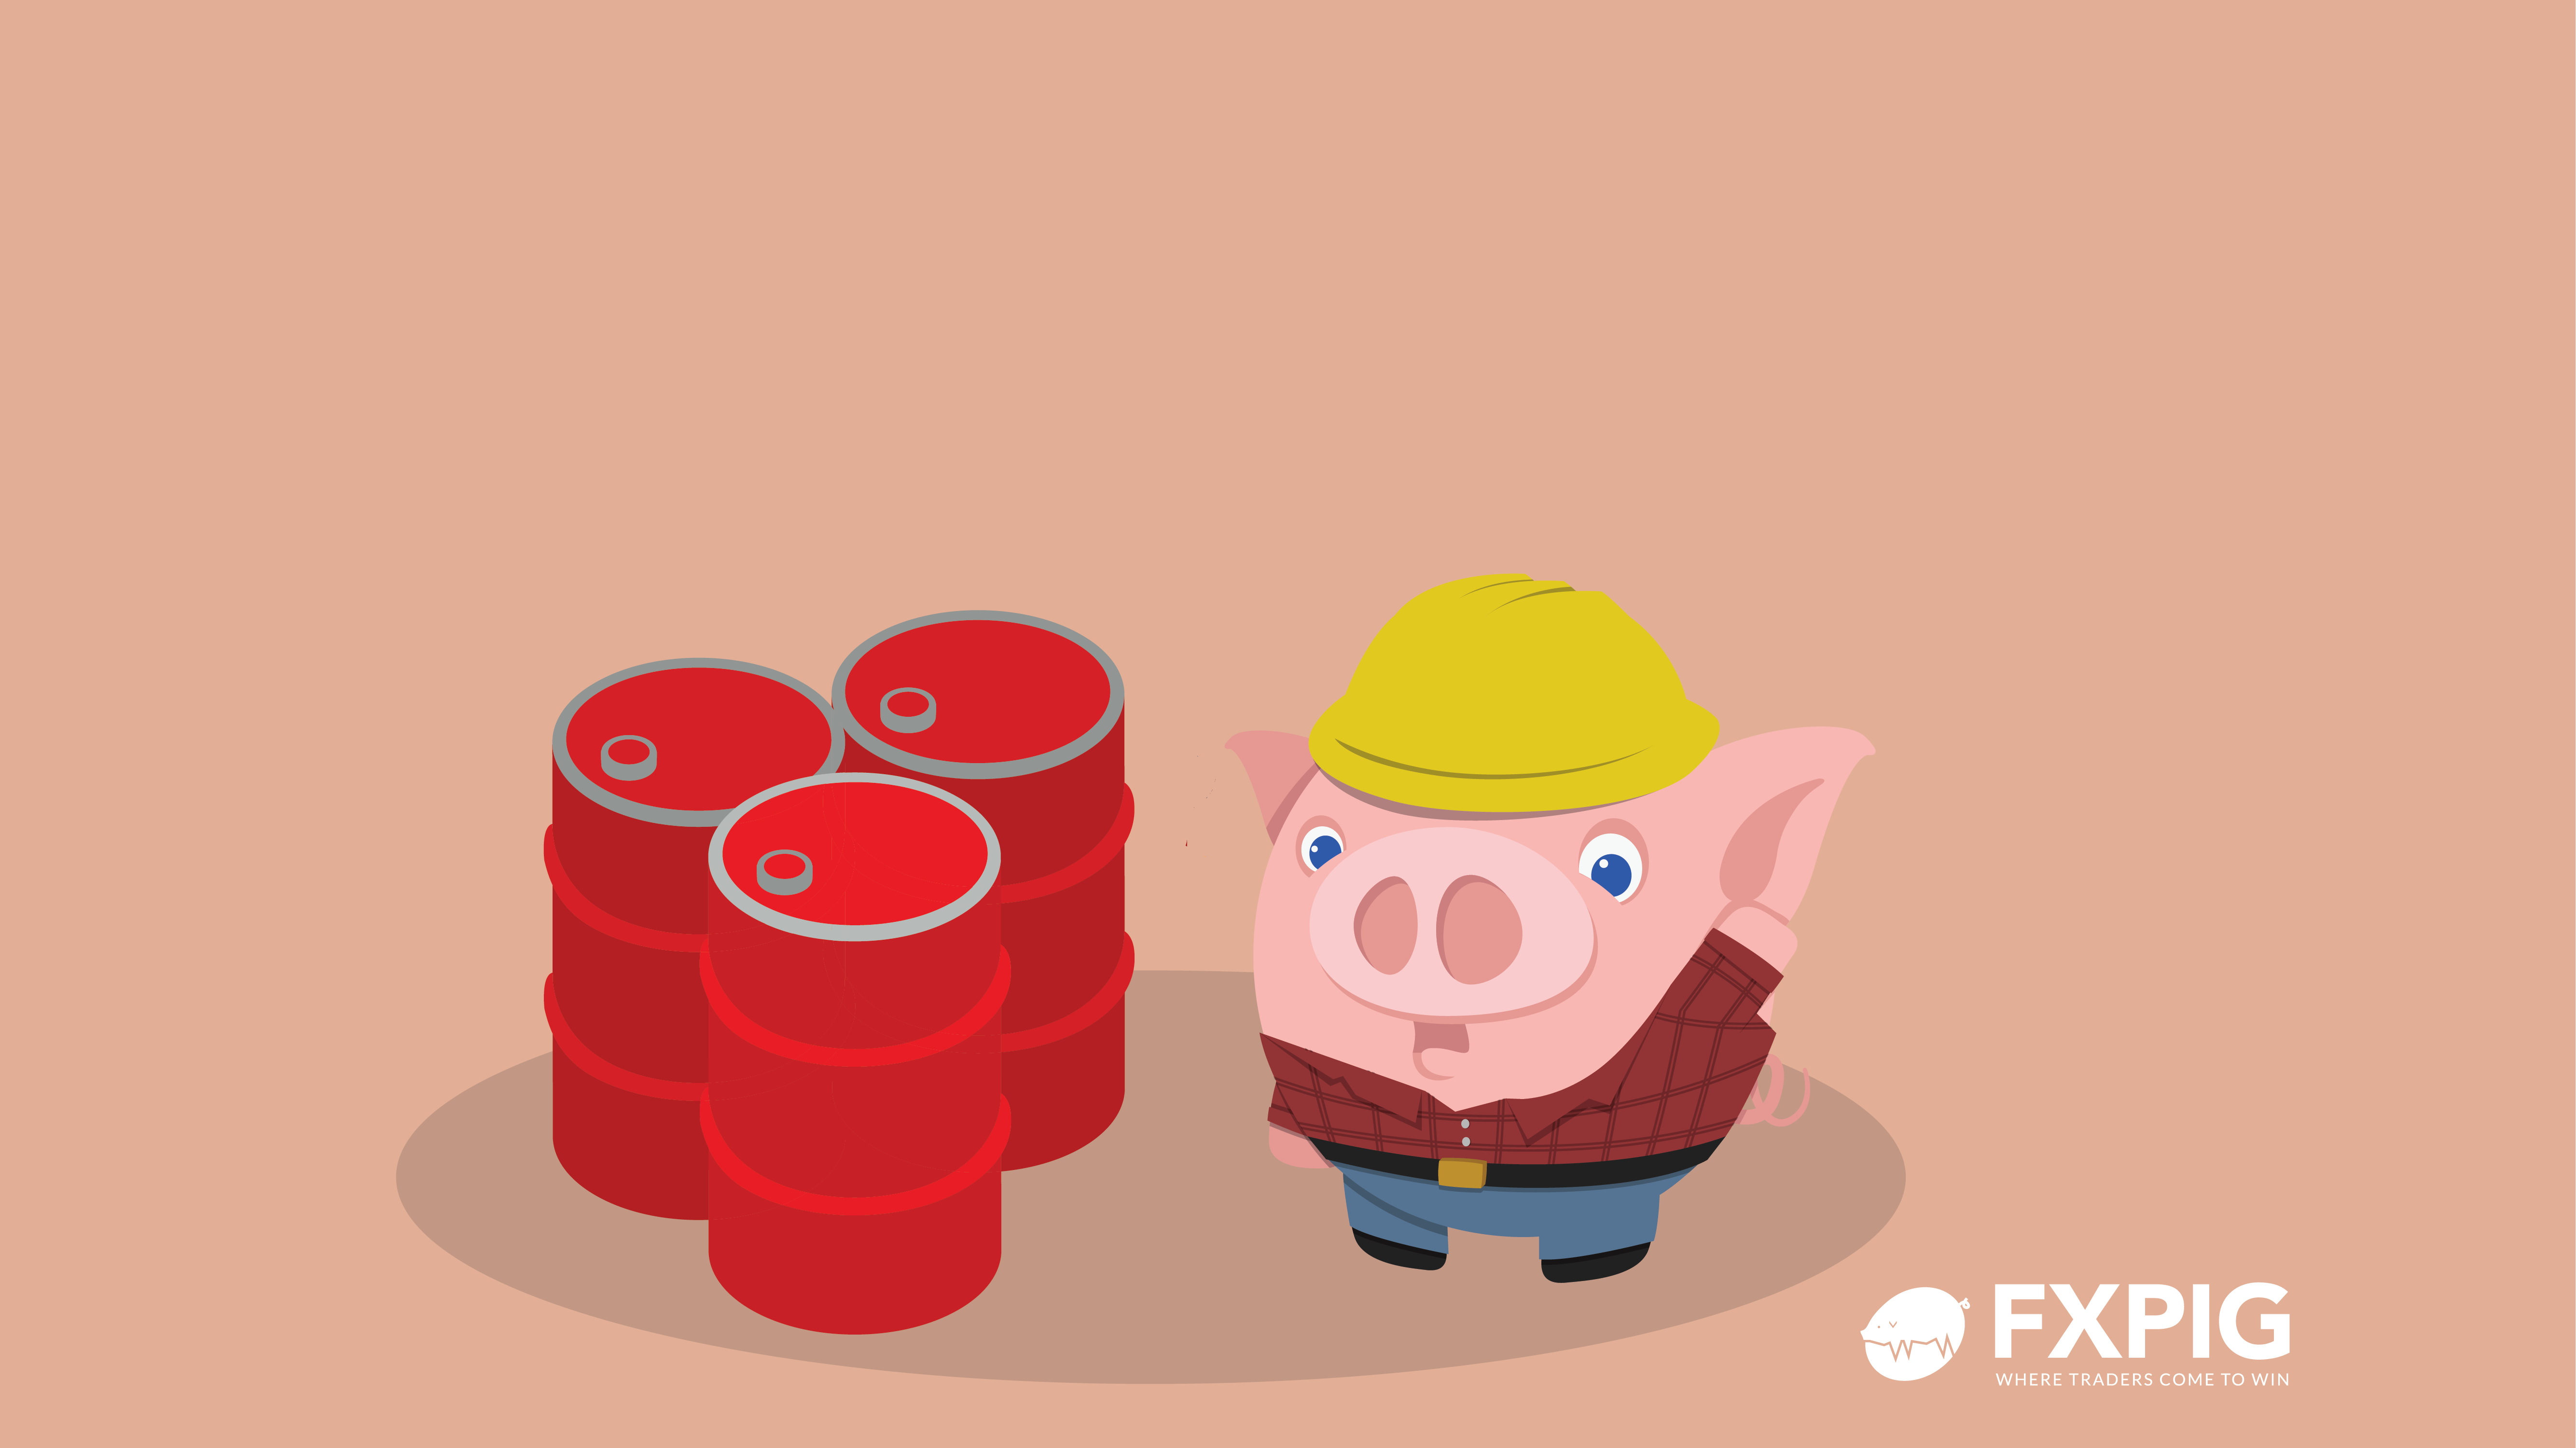 Oil_hidden-barrels_Forex_FXPIG